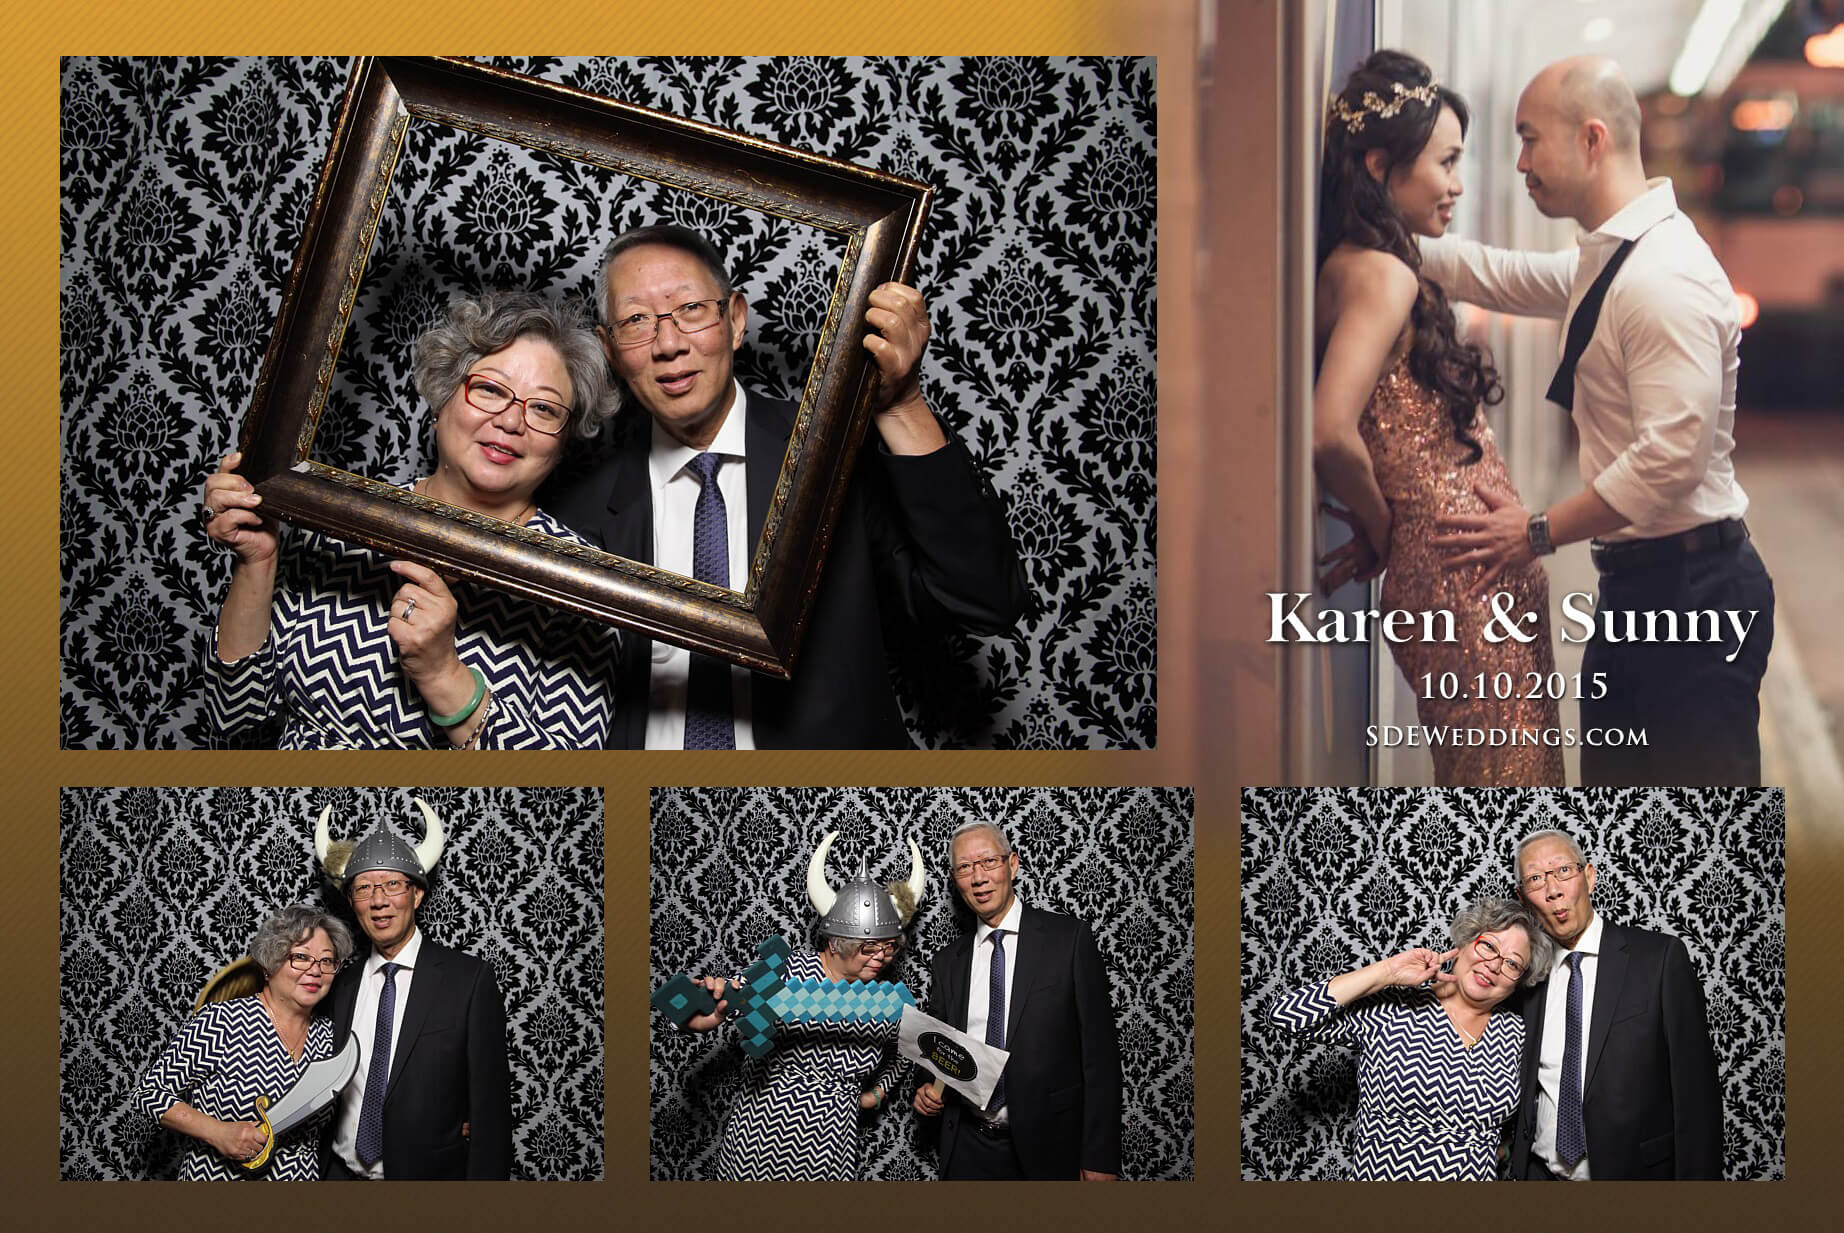 Toronto Fantasy Farm Wedding Photo Booth Rental 4